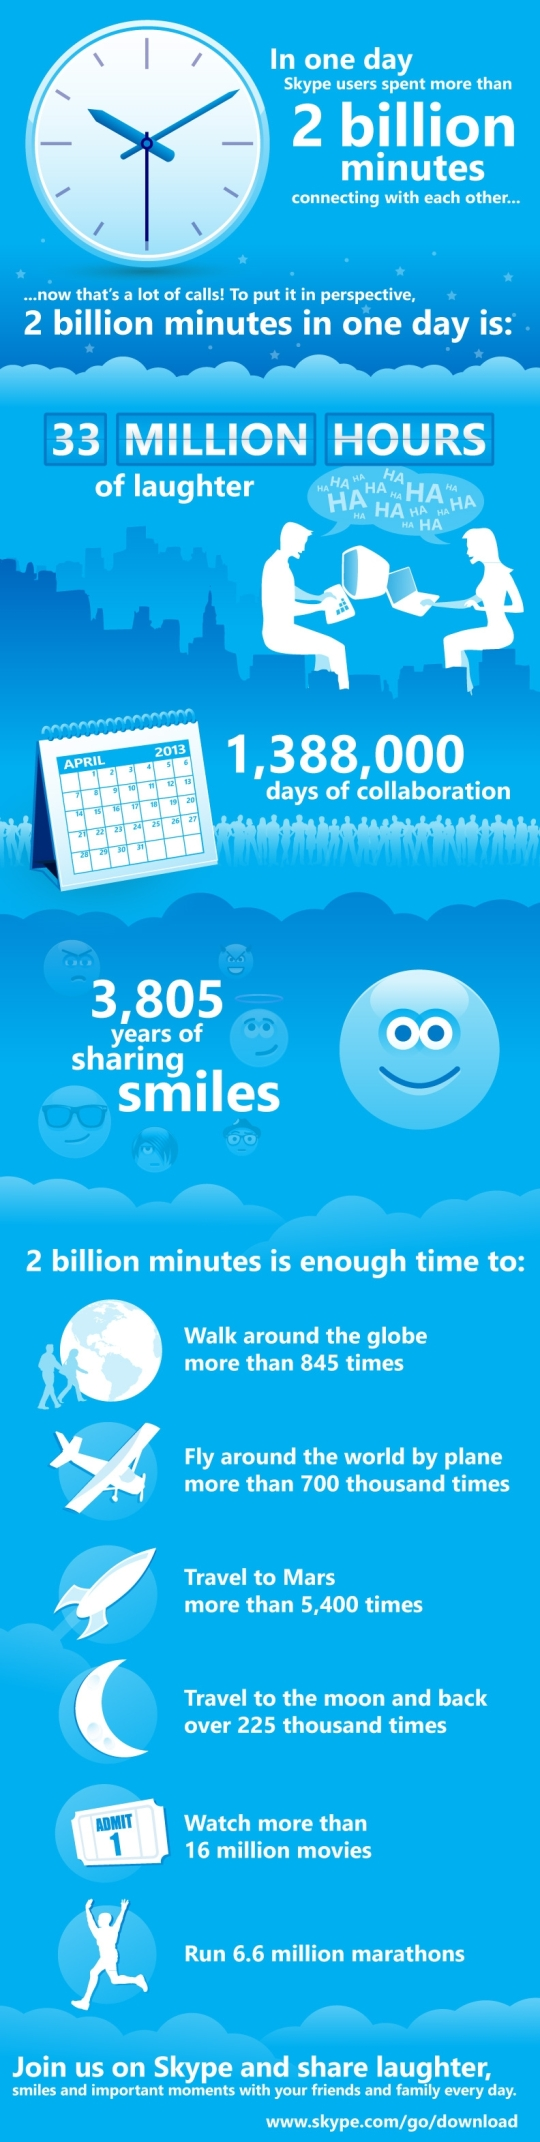 29514_1_skype_now_connects_users_for_a_total_of_2_billion_minutes_every_day_full